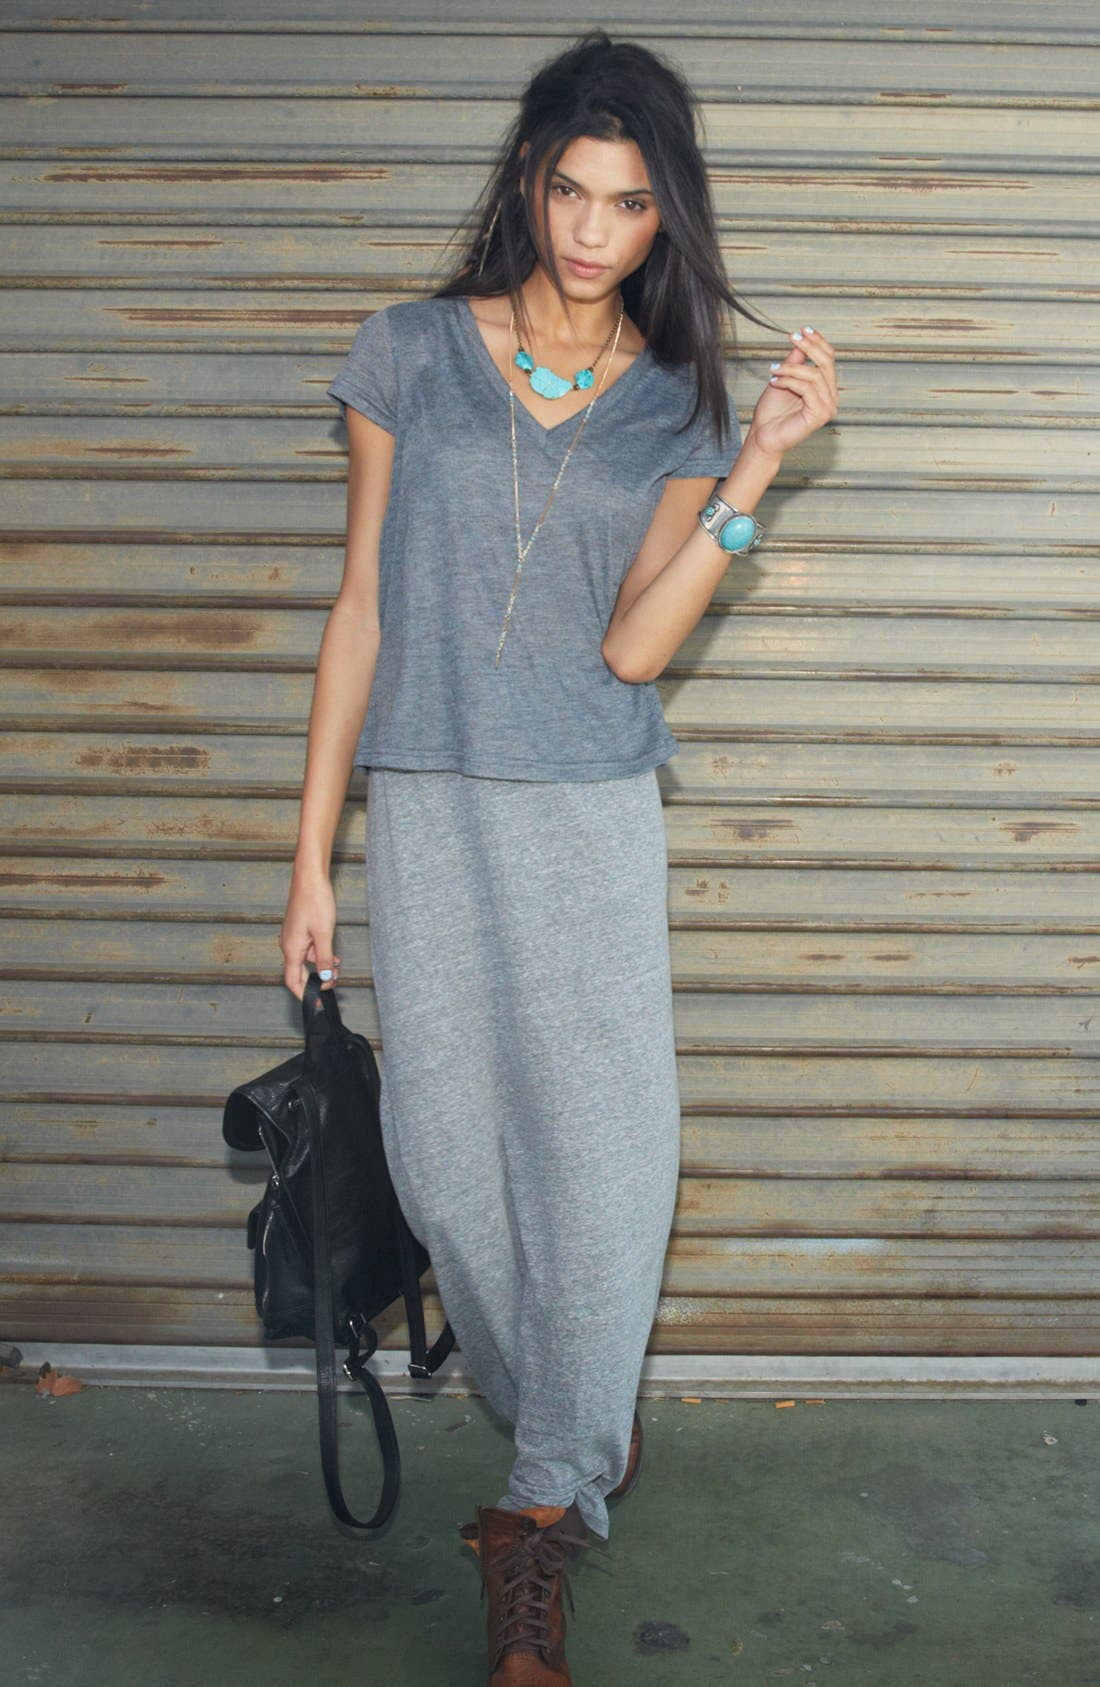 Main Image - BP. Tee, h.i.p. Maxi Skirt & Accessories